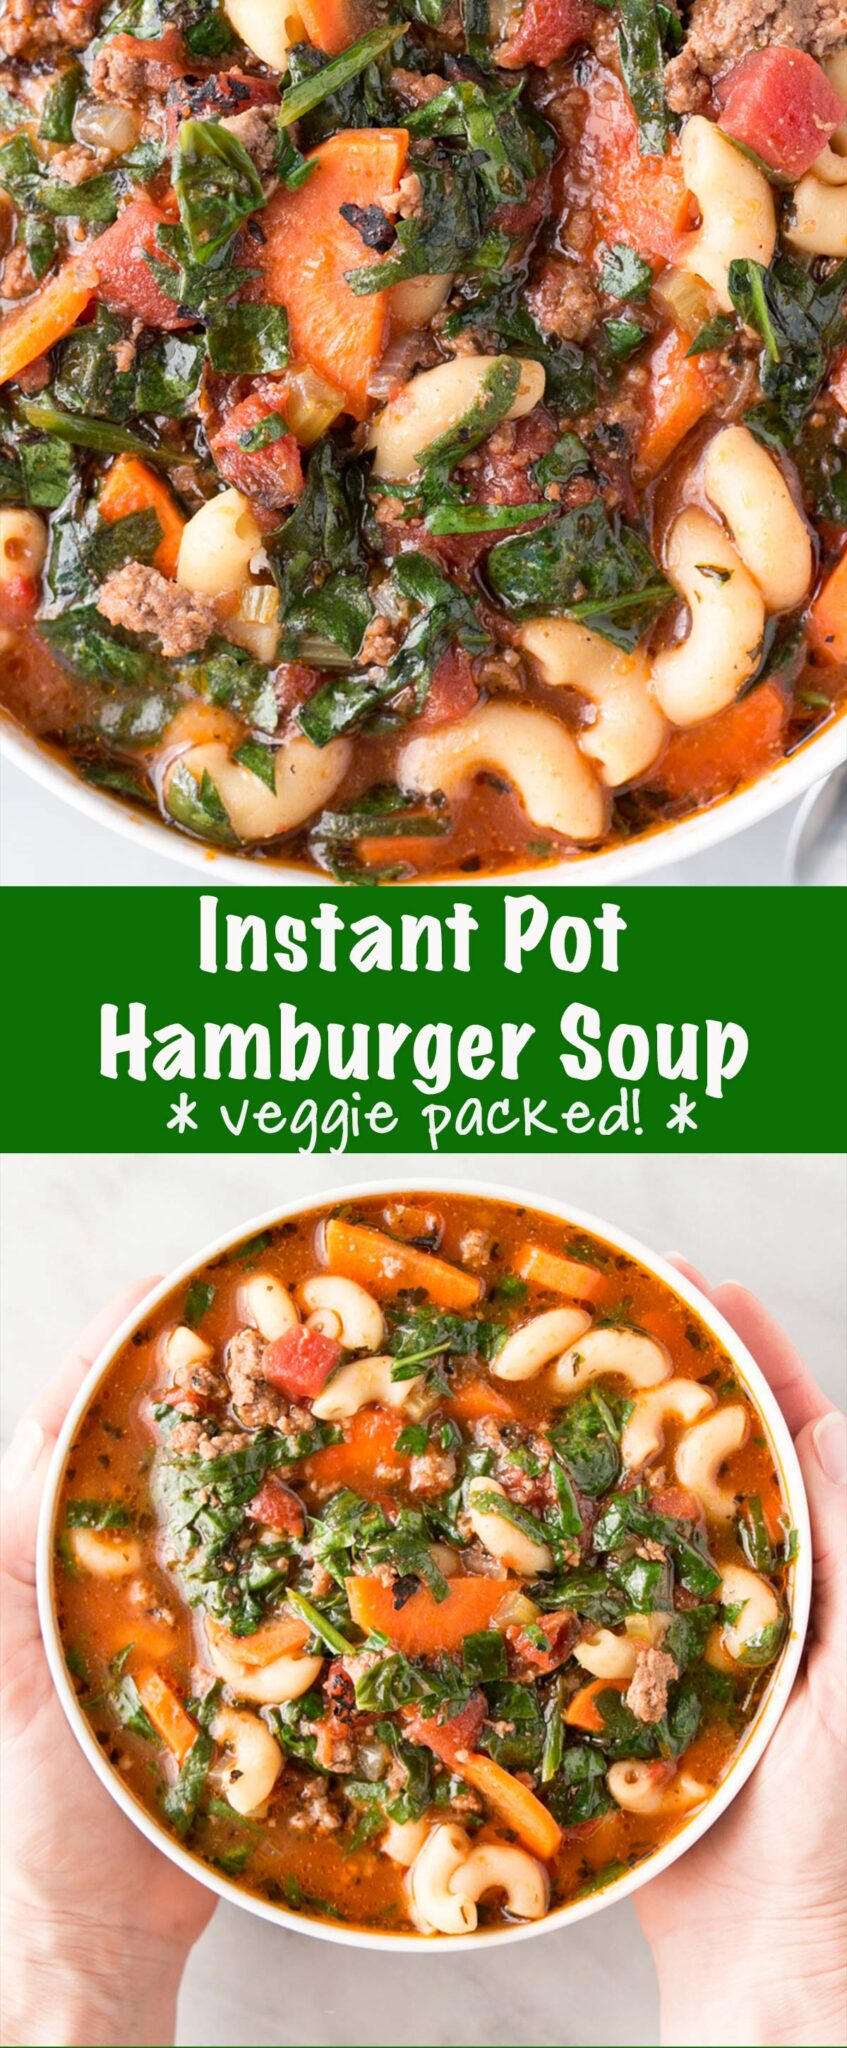 Instant Pot Hamburger Soup Pin